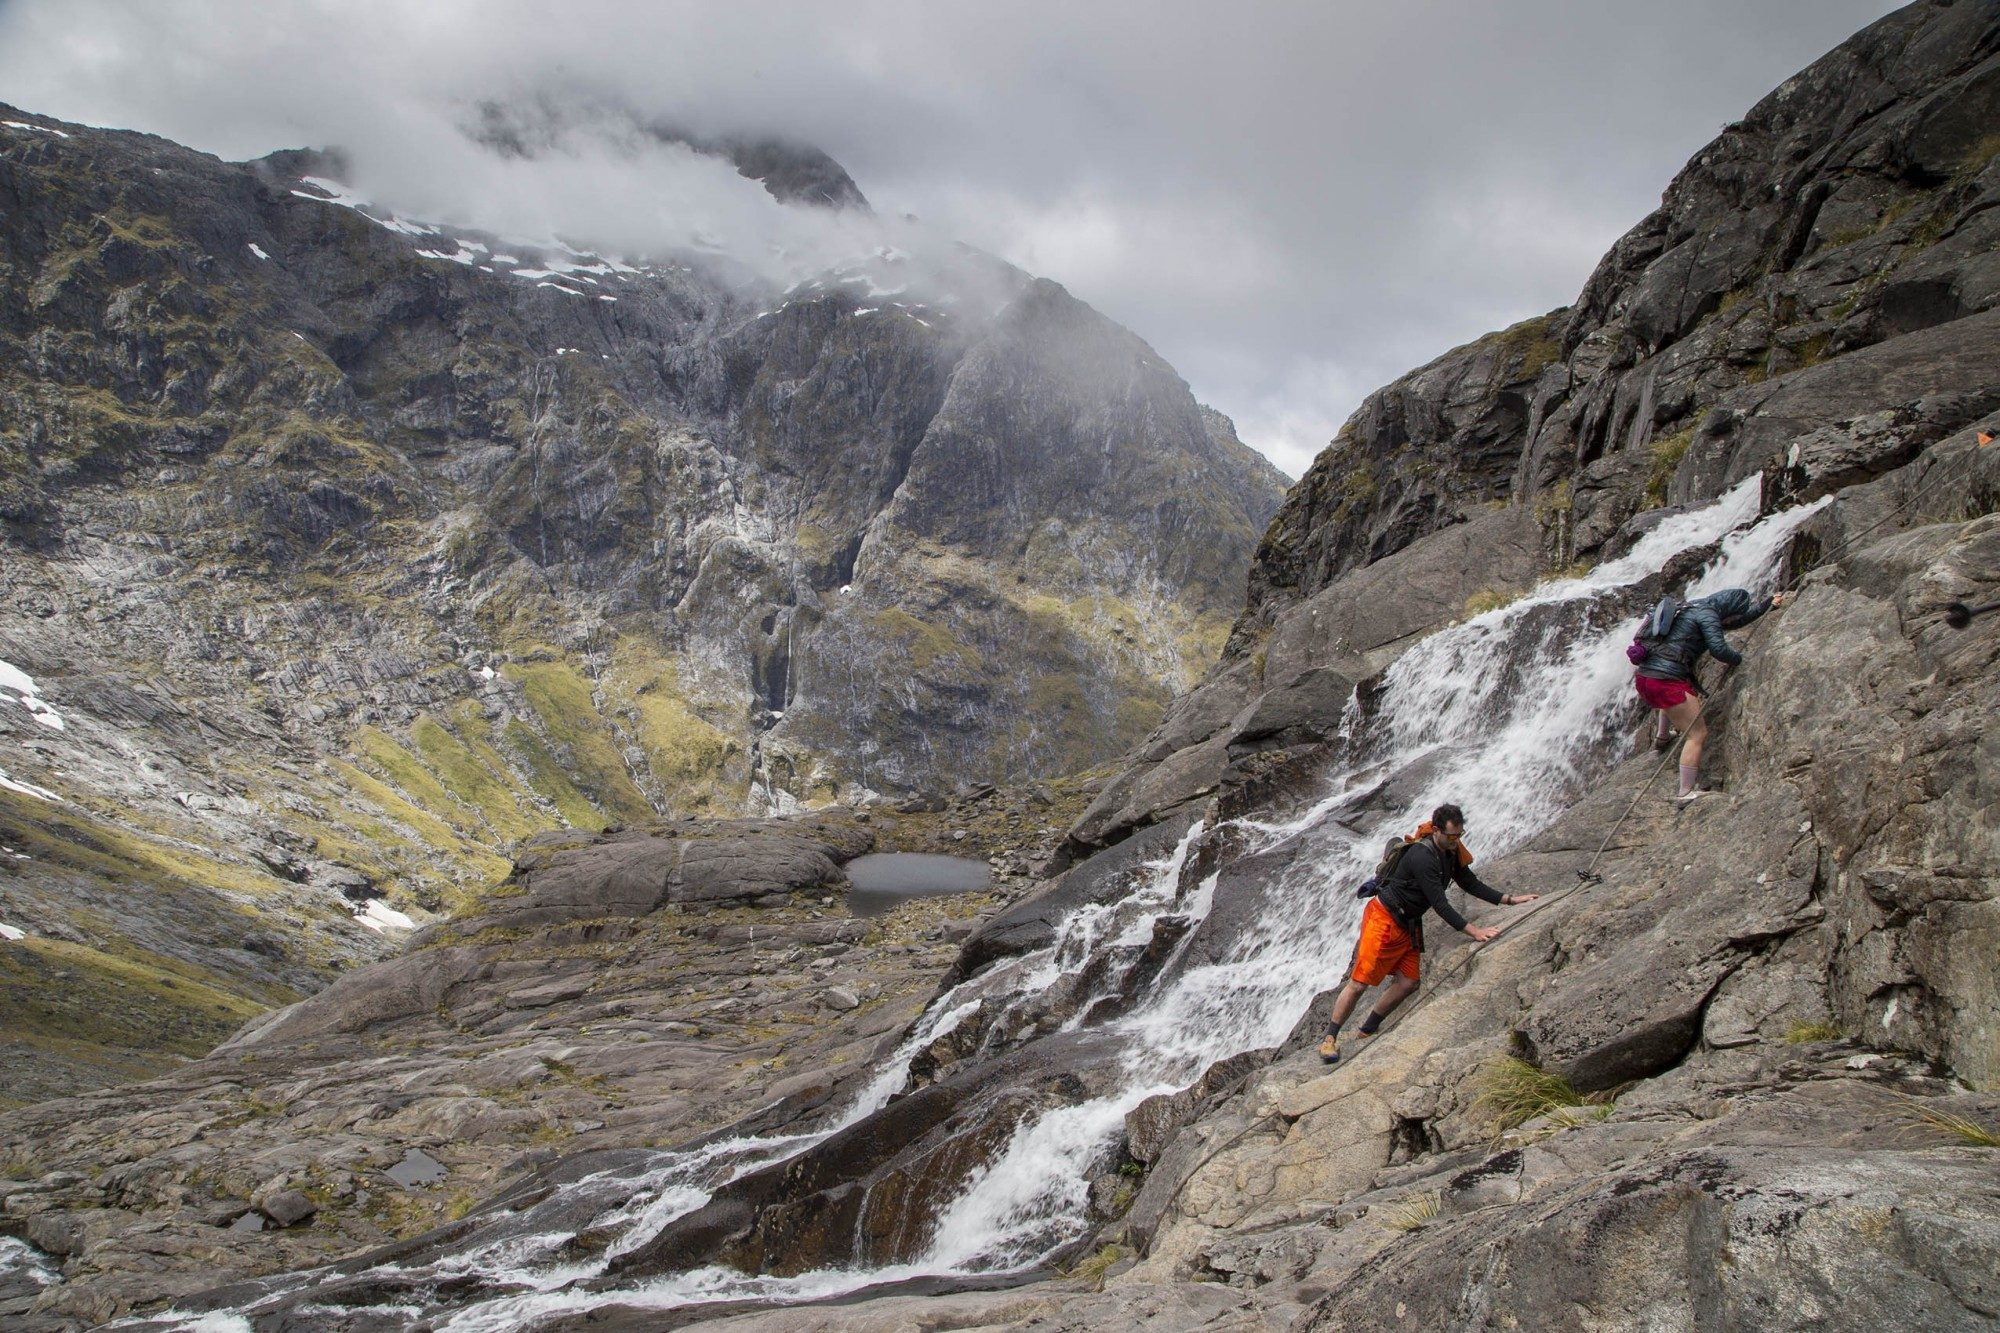 People climbing up the mountain with a waterfall behind them